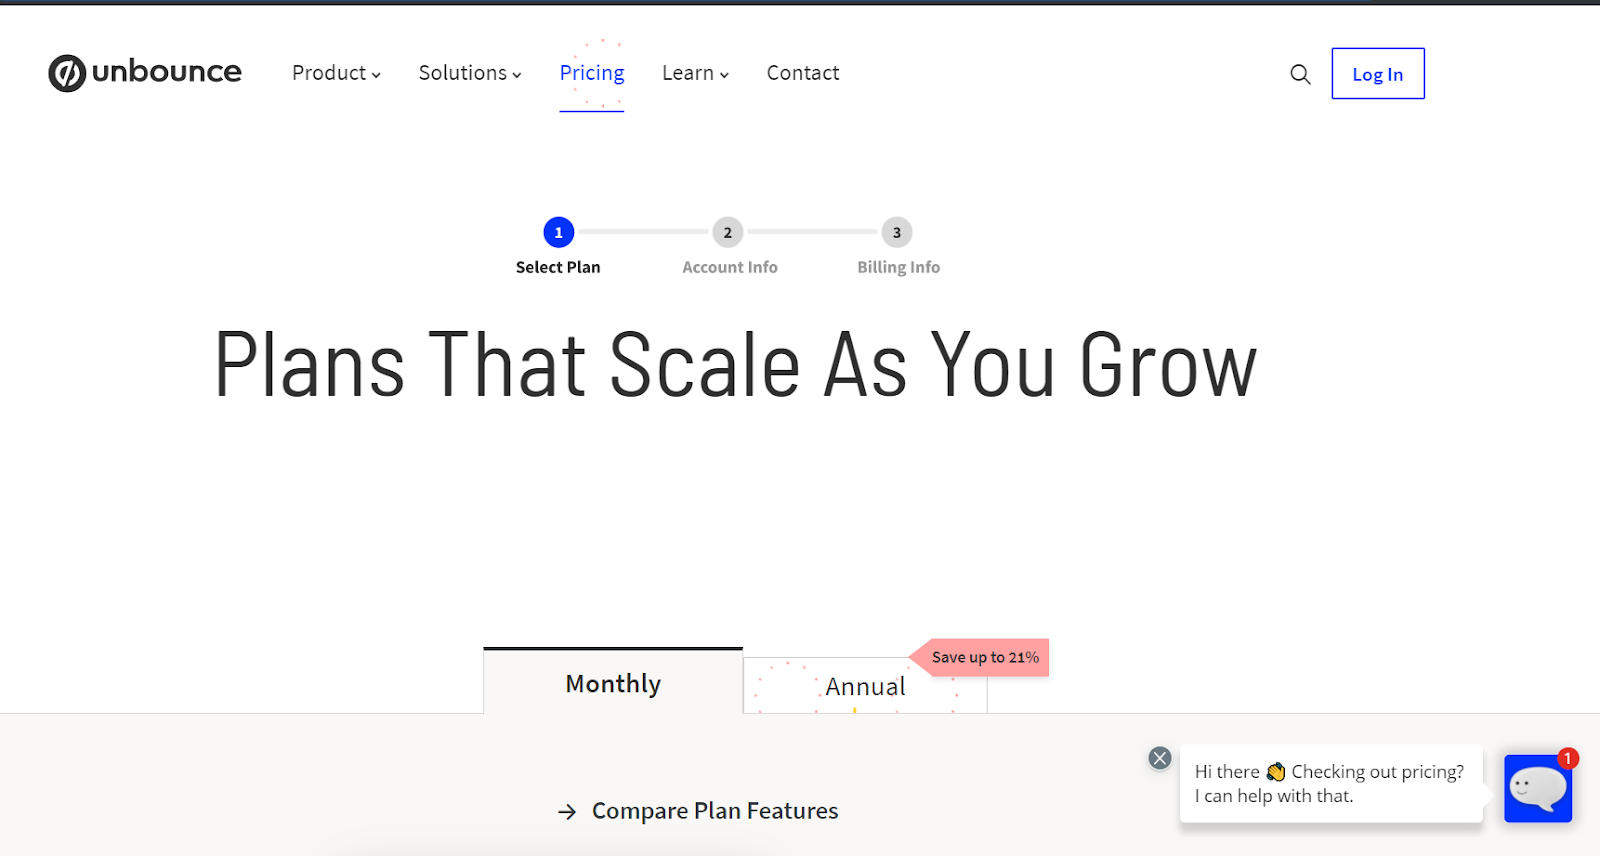 Unbounce pricing page is built using jobs-to-be-done approach